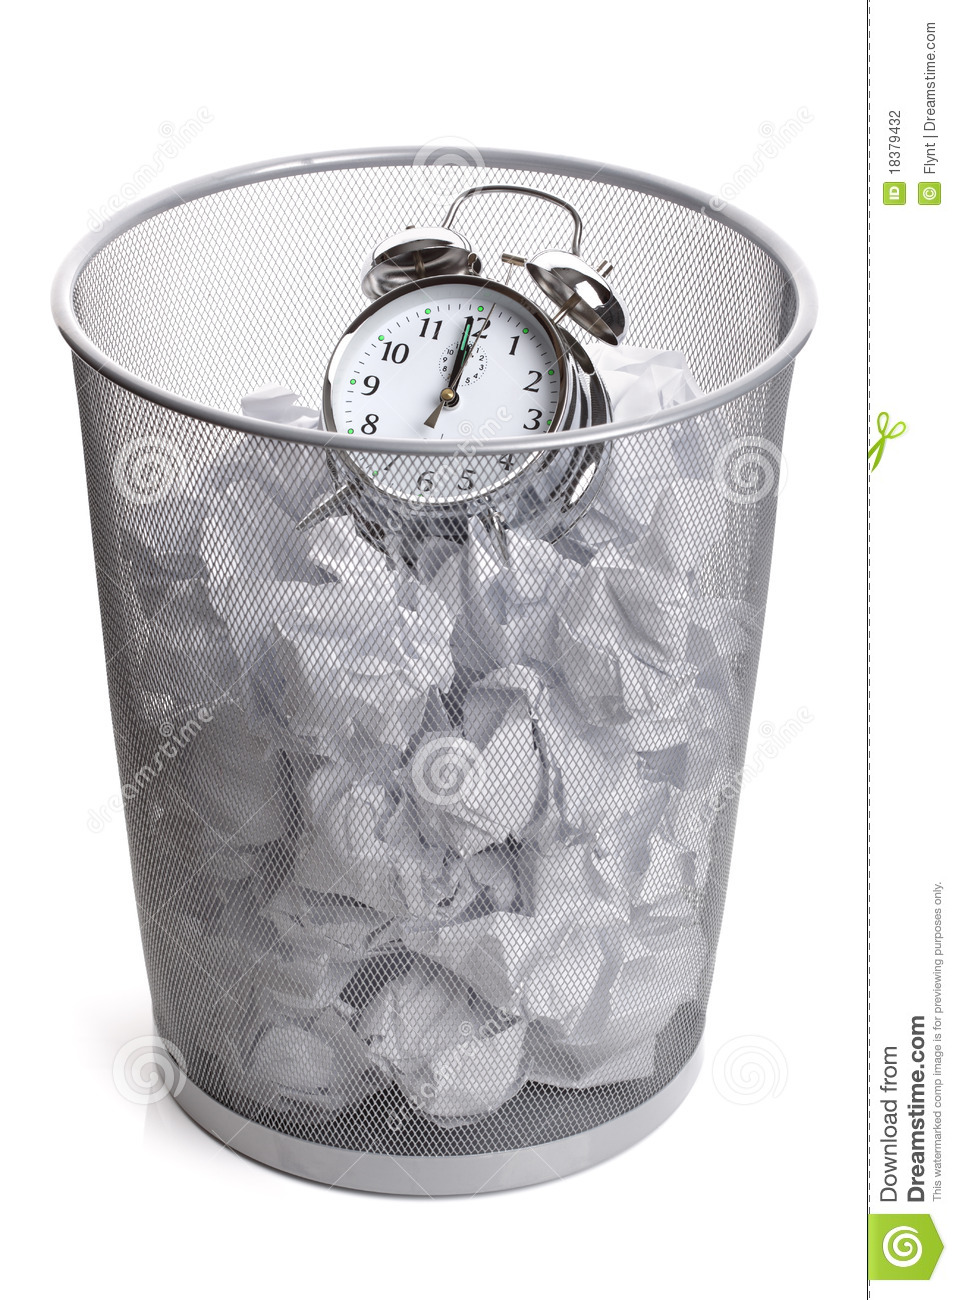 Images Stock Rubbish Wasting Time Stock Photo Image Of Reminder Time Shot